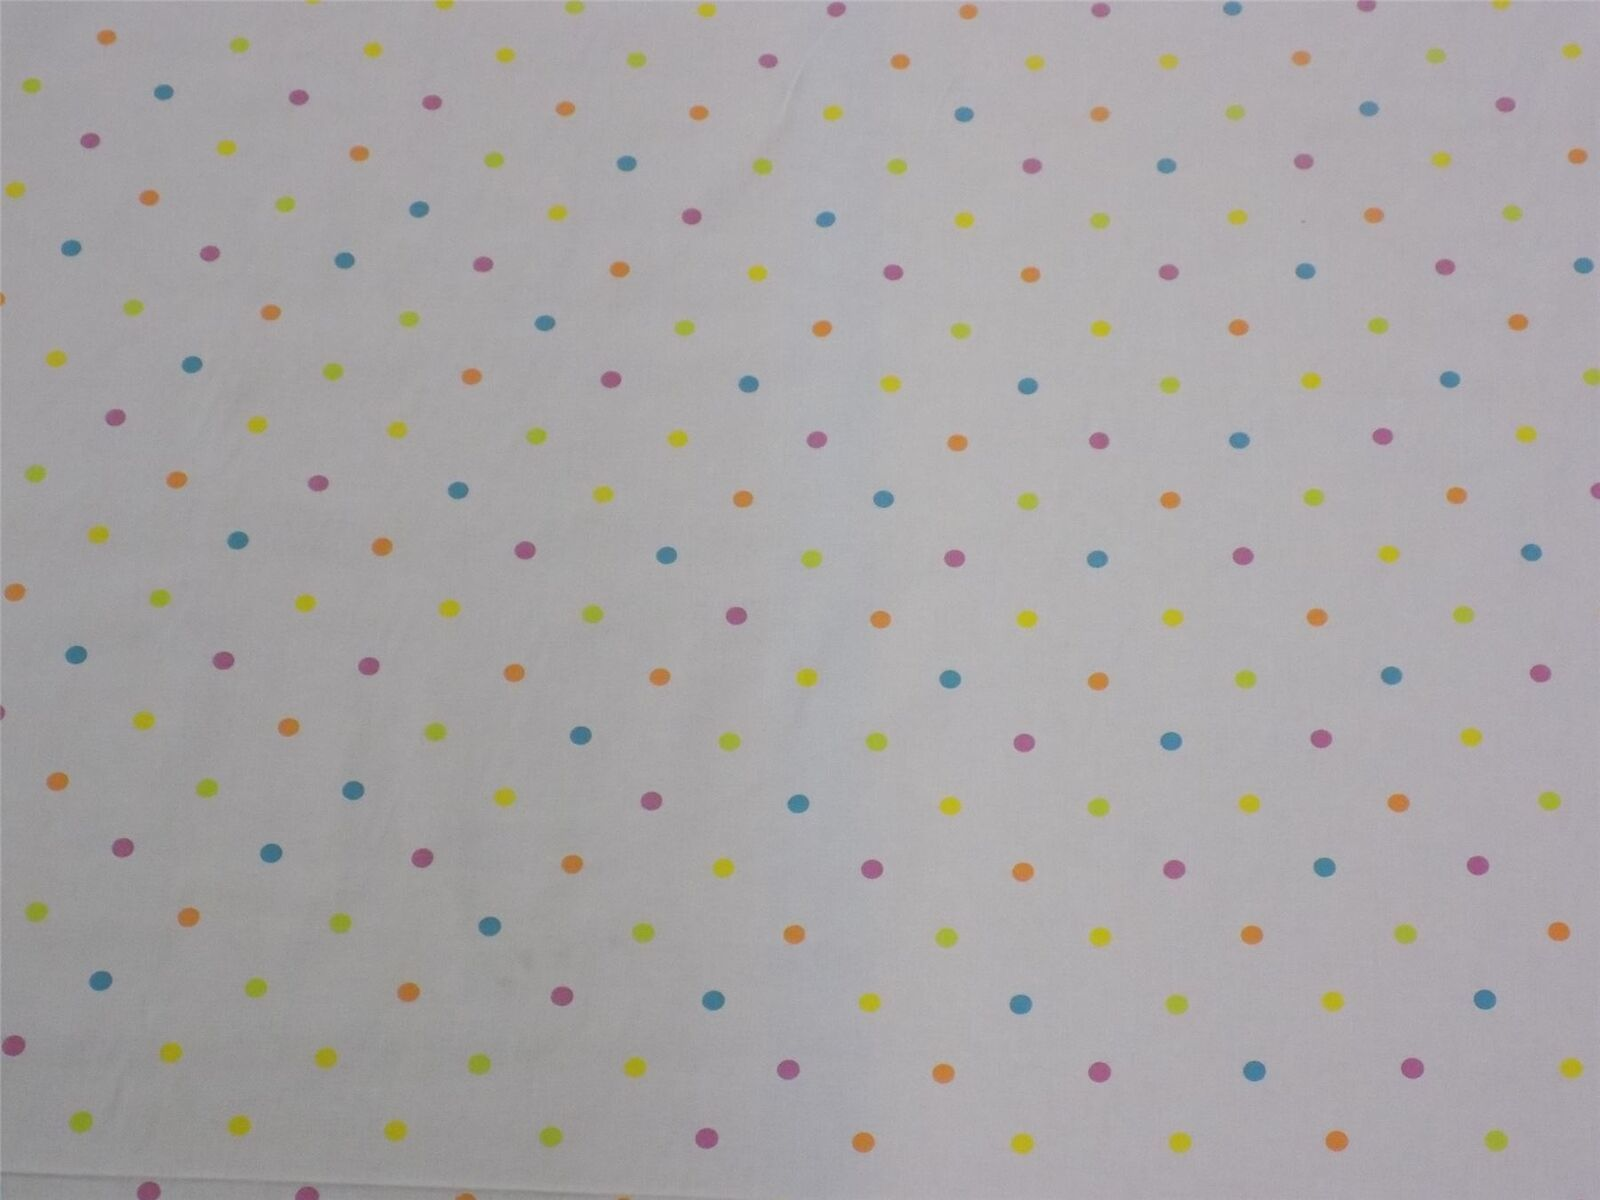 Spots and Dots White Orange Pink Cotton High Quality Fabric Material 3 Sizes